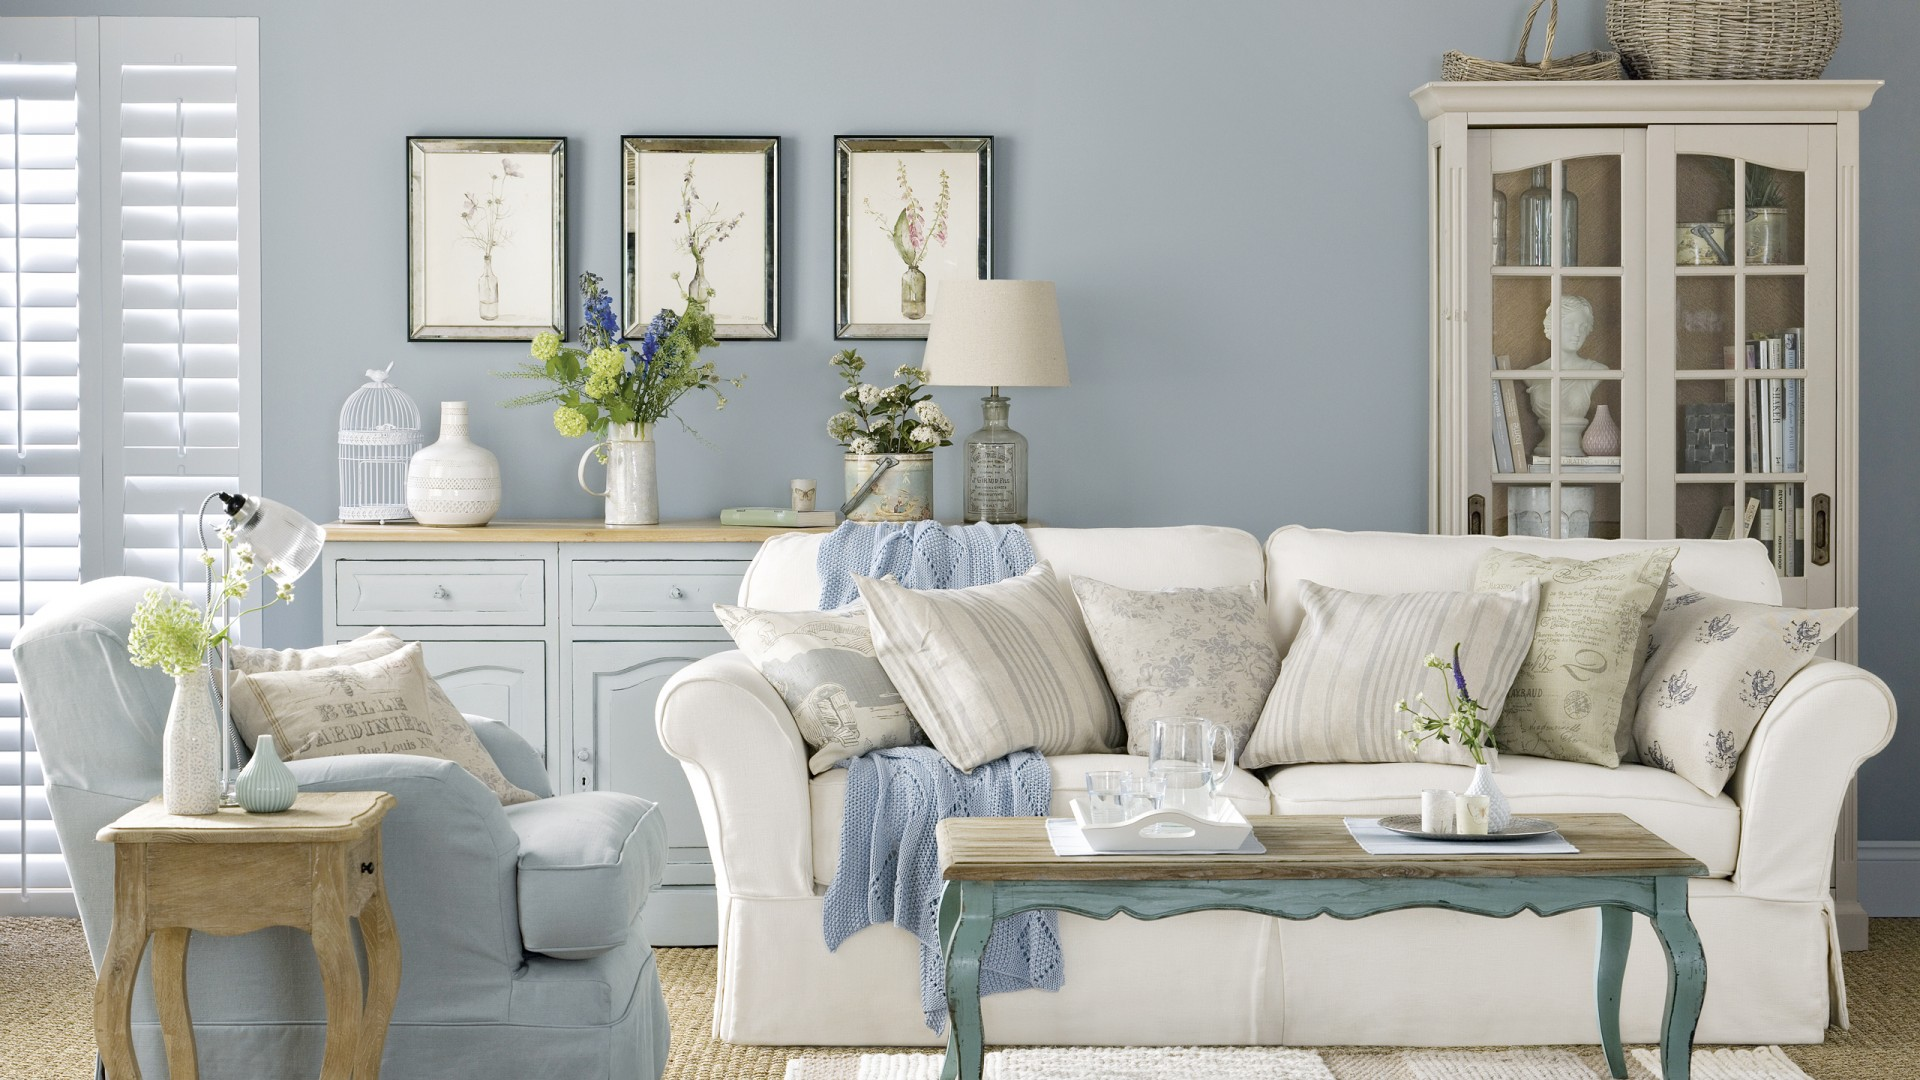 Pale Blue Country Boutique Living Room - The Room Edit